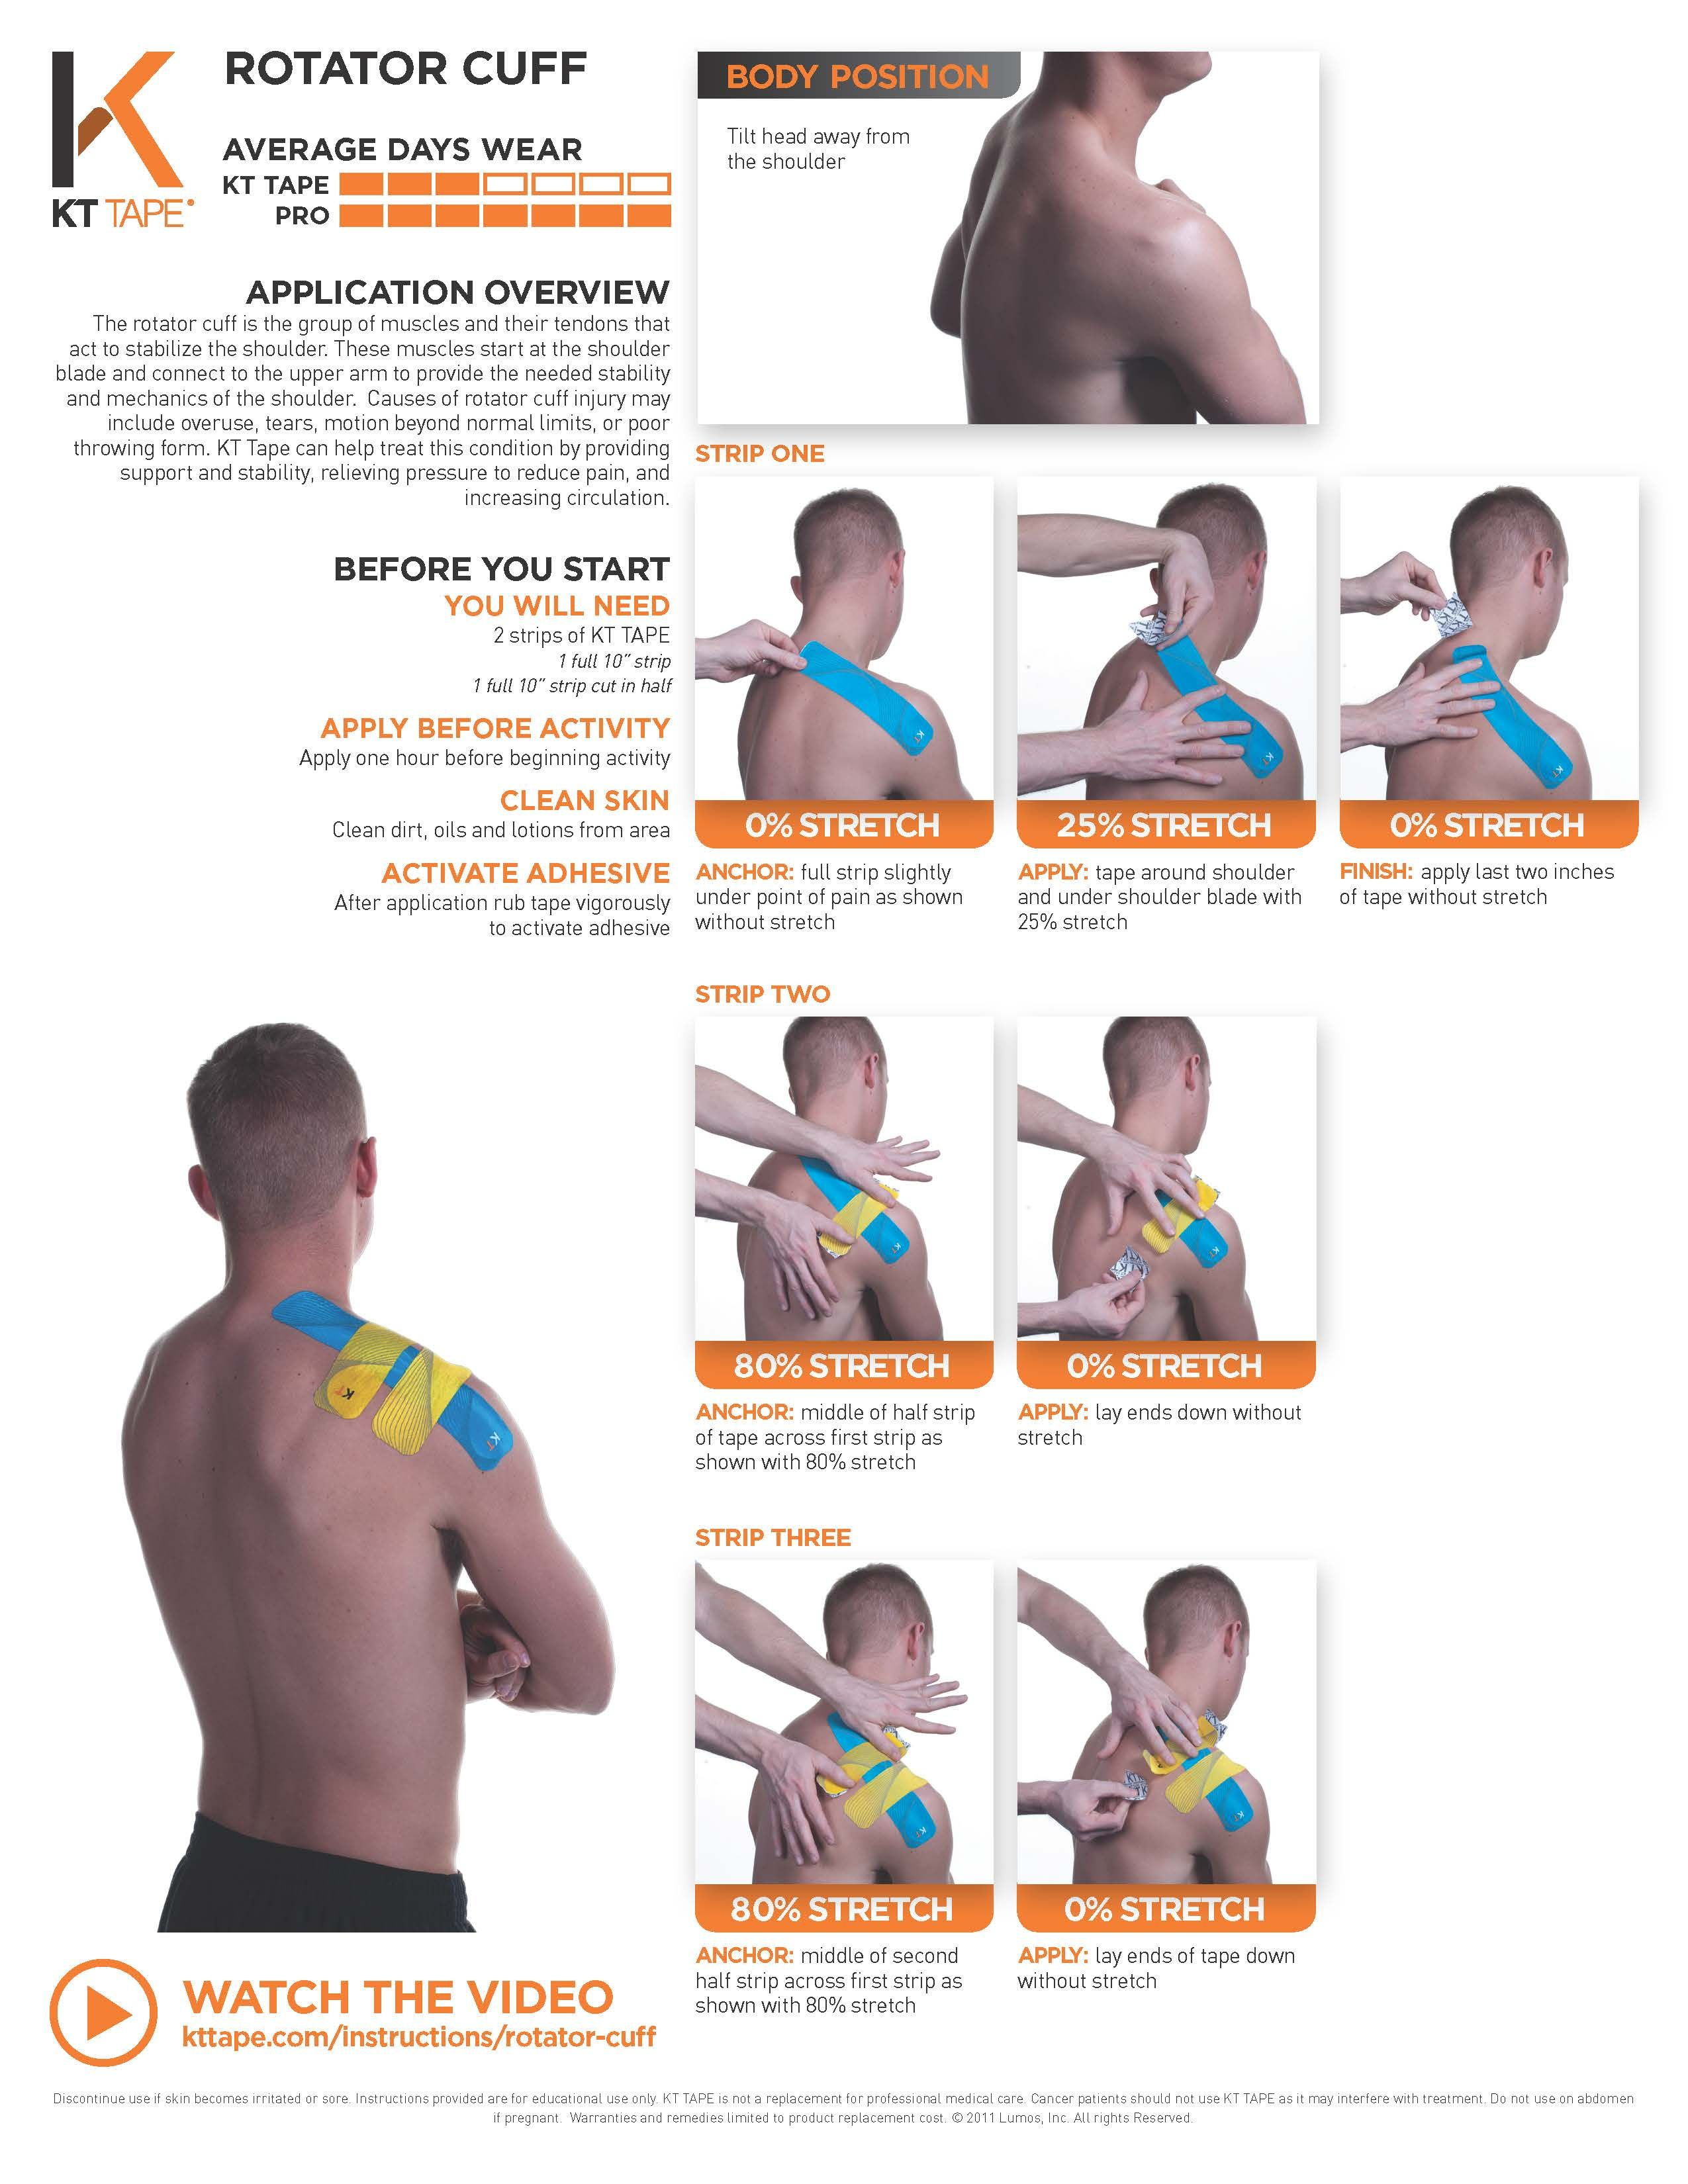 Rotator cuff pain makes you realize how much you use your shoulder all day long. Here's a quick and easy taping application from #KTTape to help get you back on track.